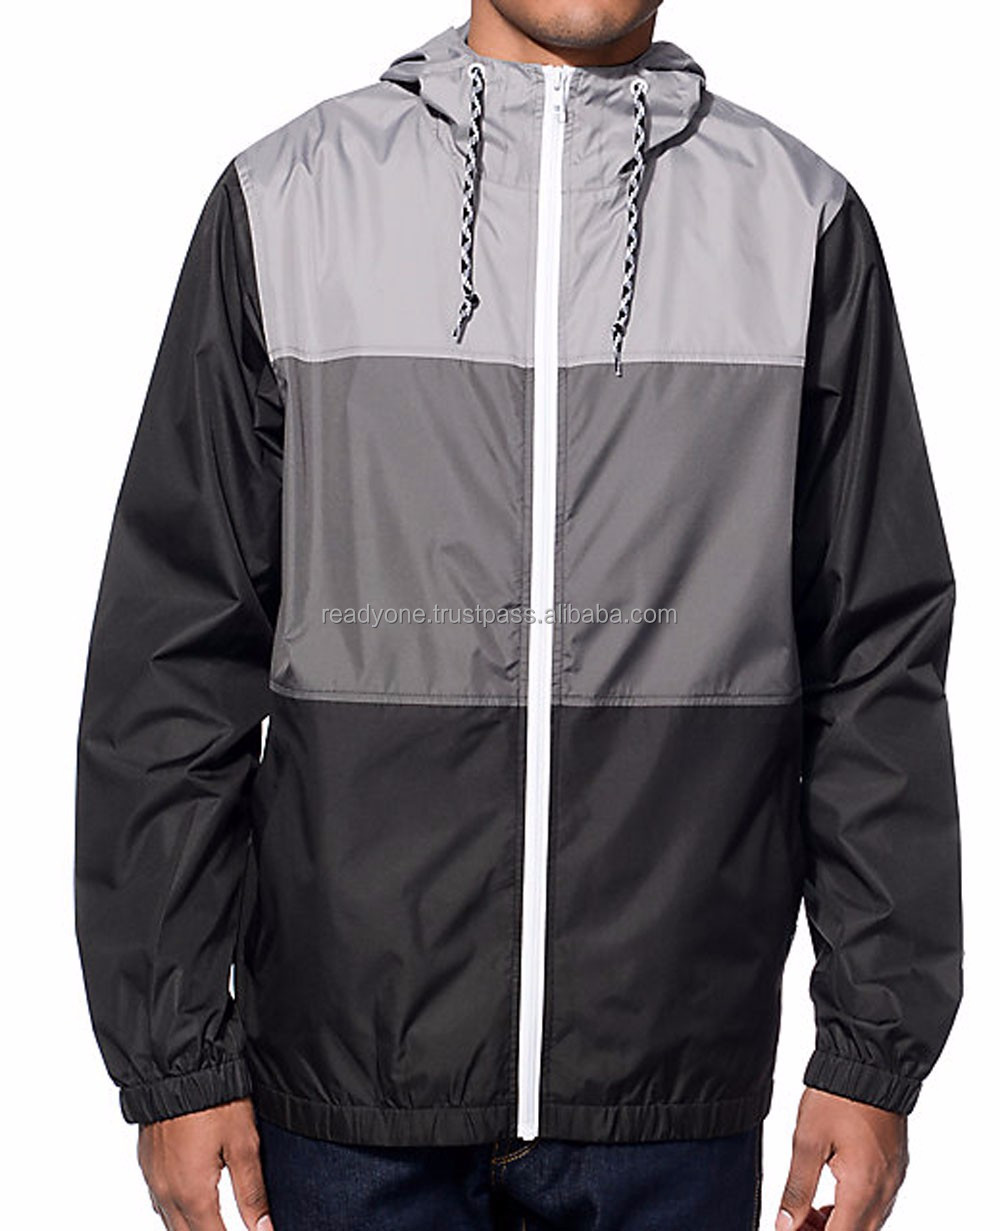 Plain Windbreaker Jacket, Plain Windbreaker Jacket Suppliers and ...